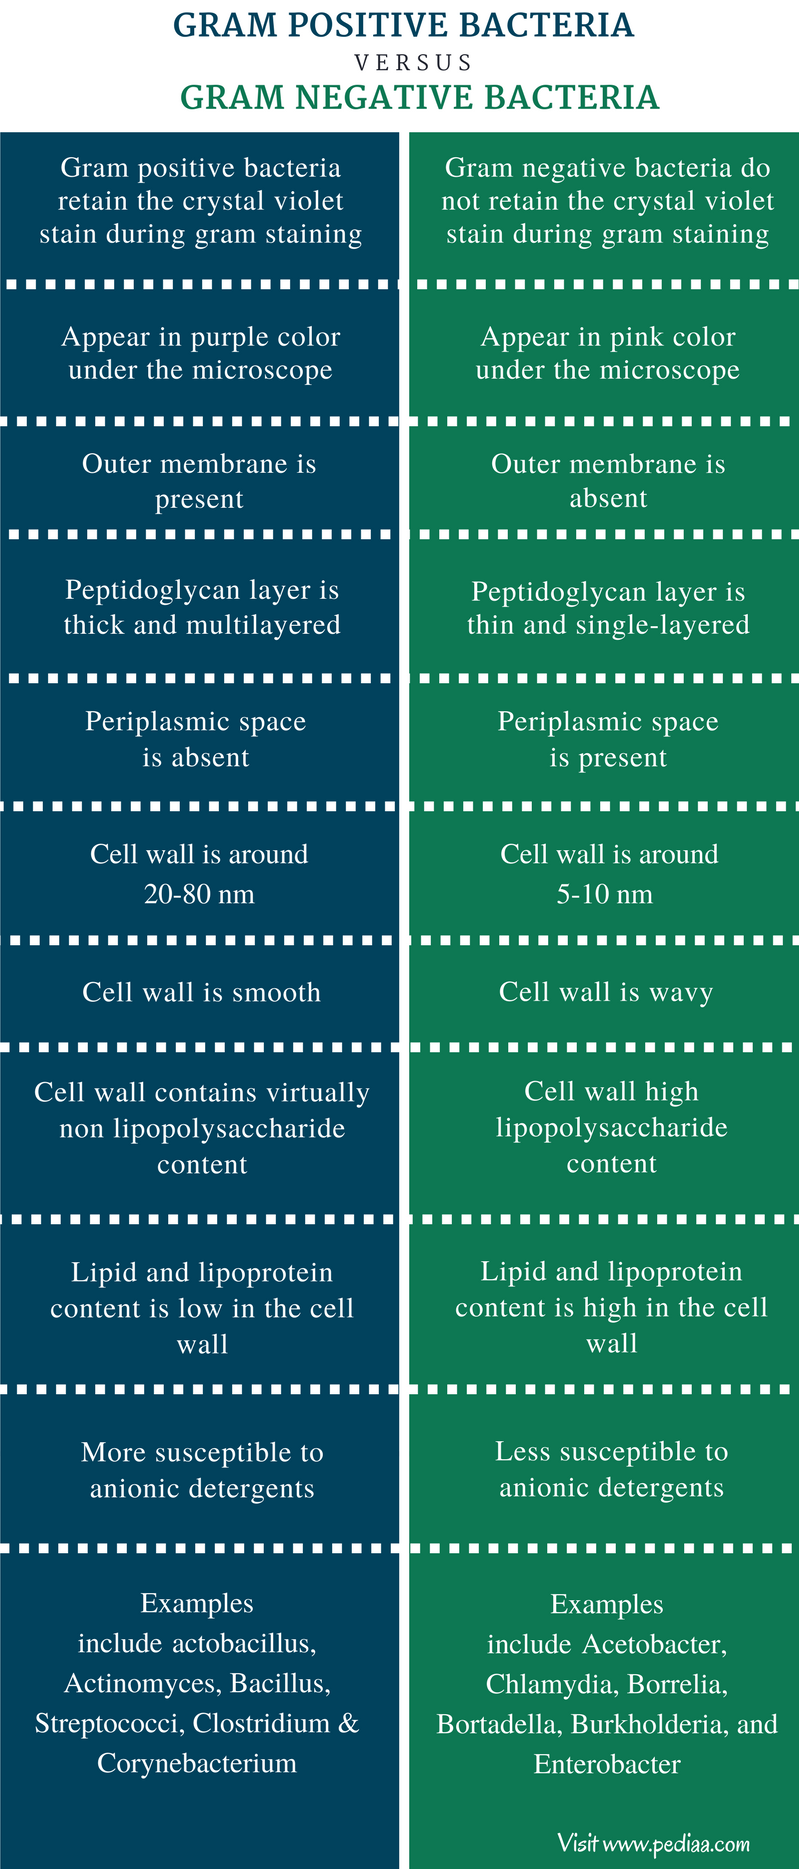 Difference Between Gram Positive and Gram Negative Bacteria - Comparison Summary